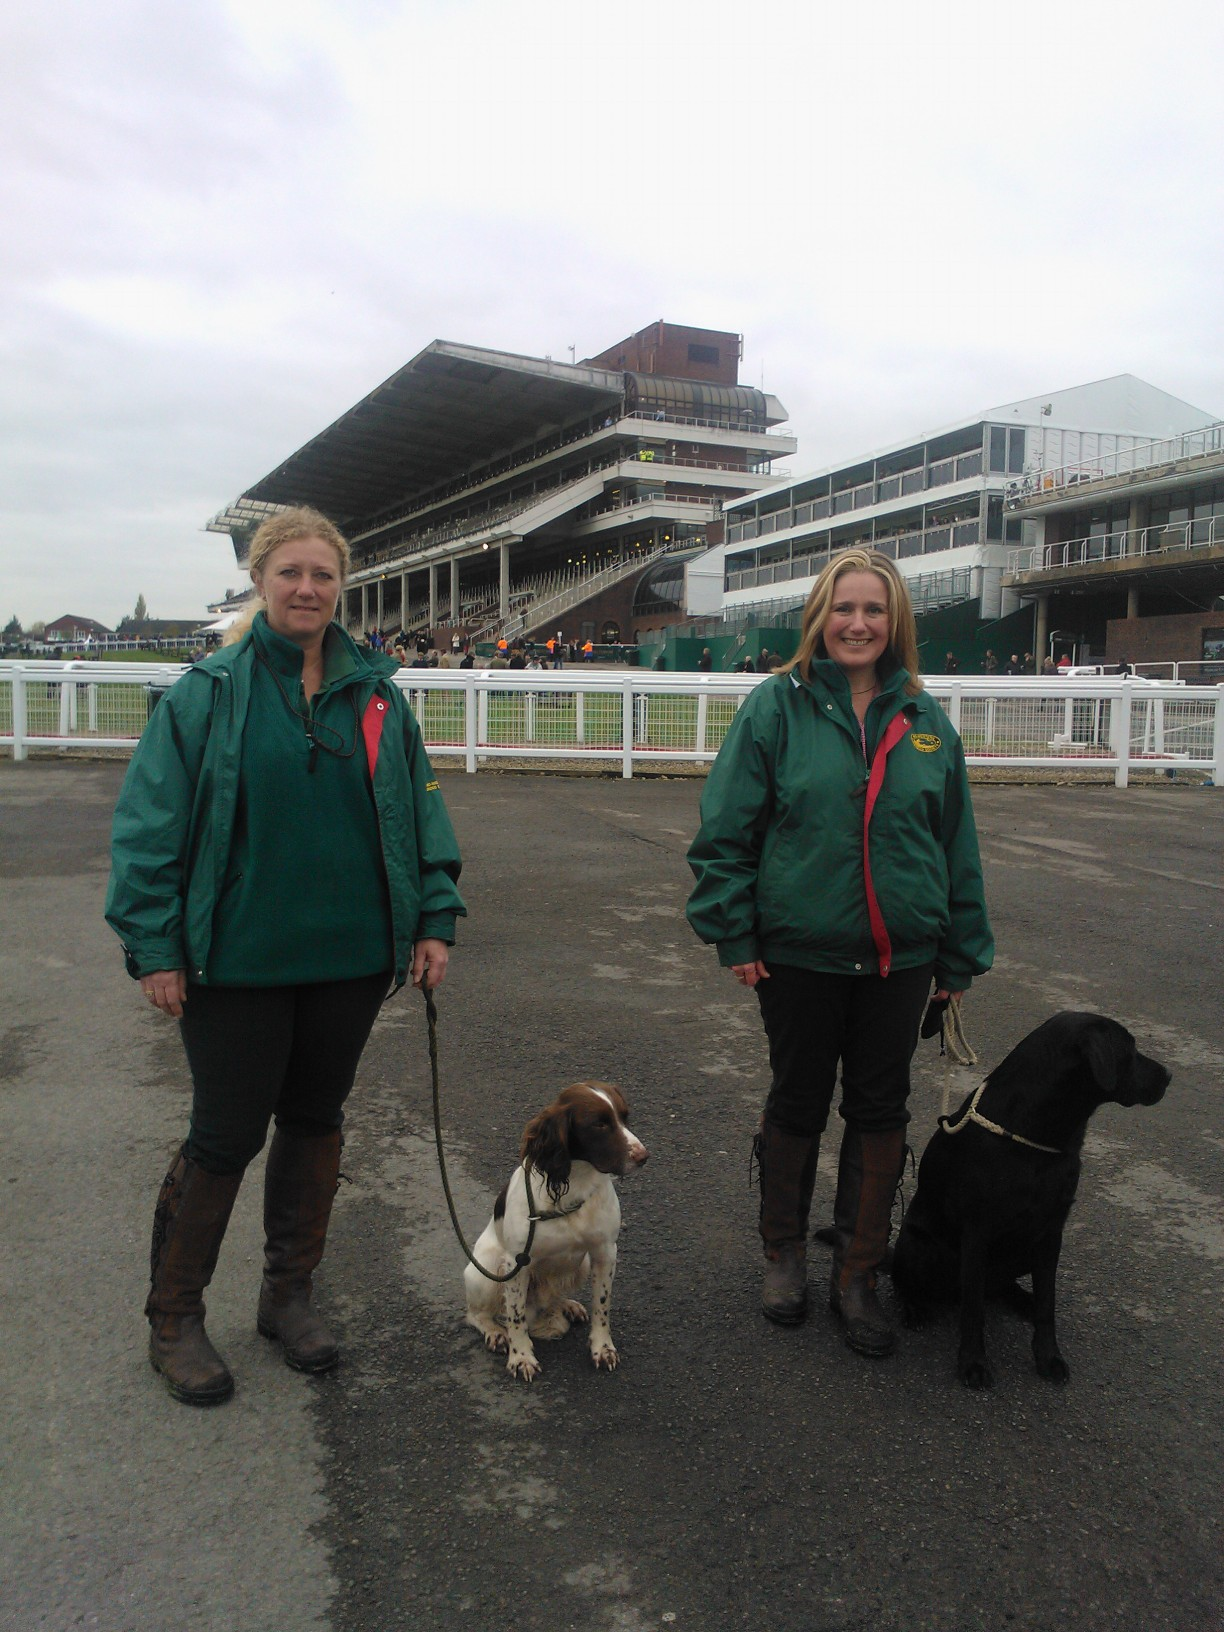 Chris (left) and Cathy (right) together in the UK with their canine friends Paddy (left) and Inca (right)!